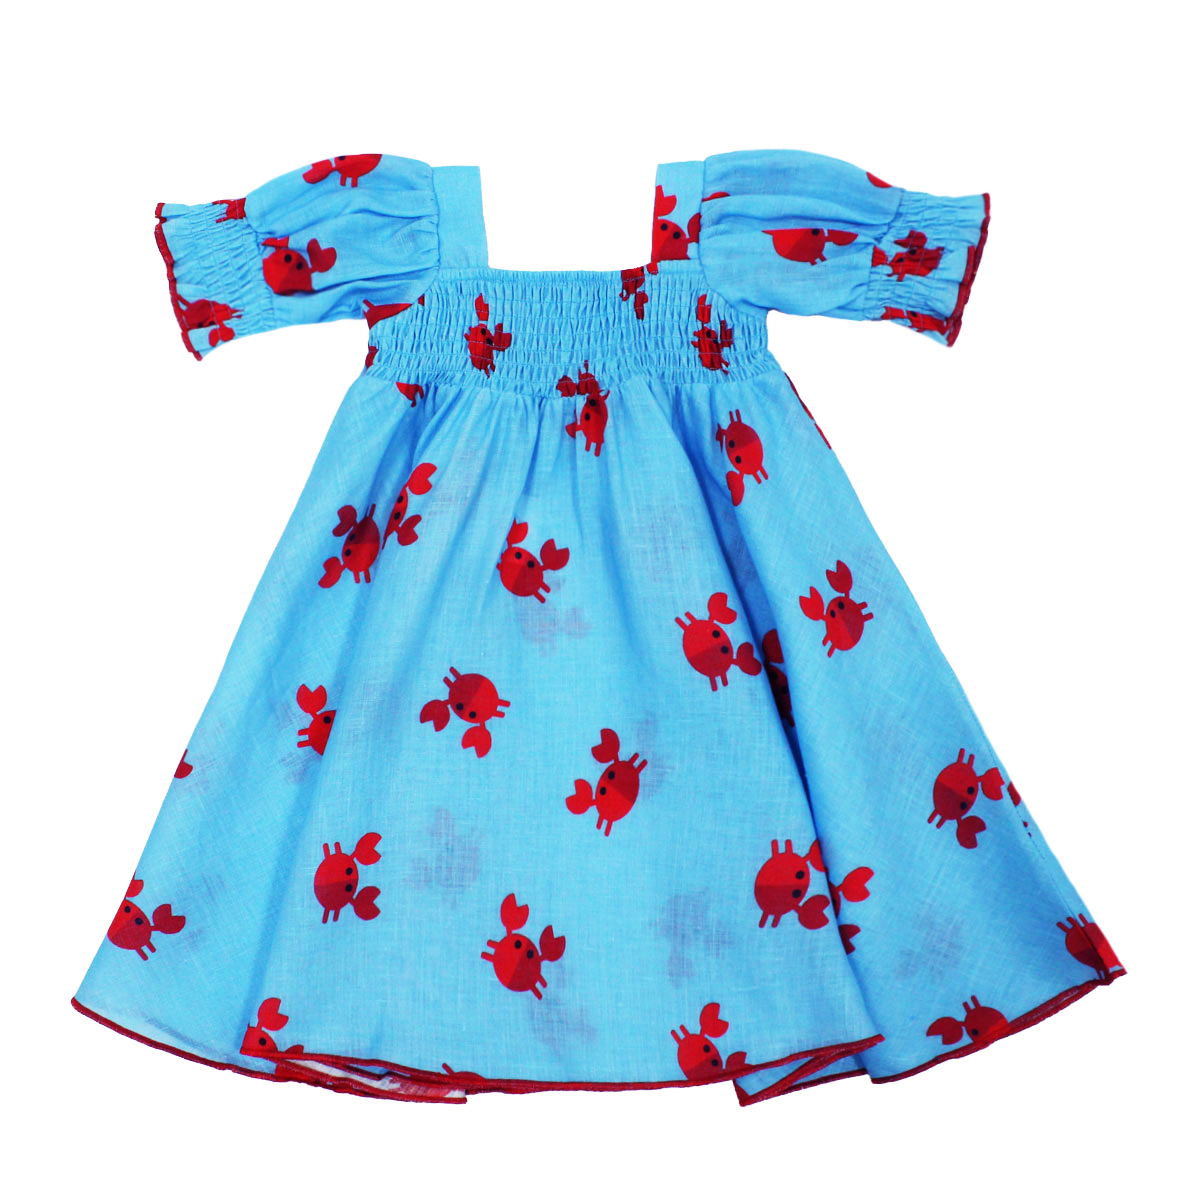 Gul Hurgel Short Sleeve Girl's Dress in Blue with Red Crabs